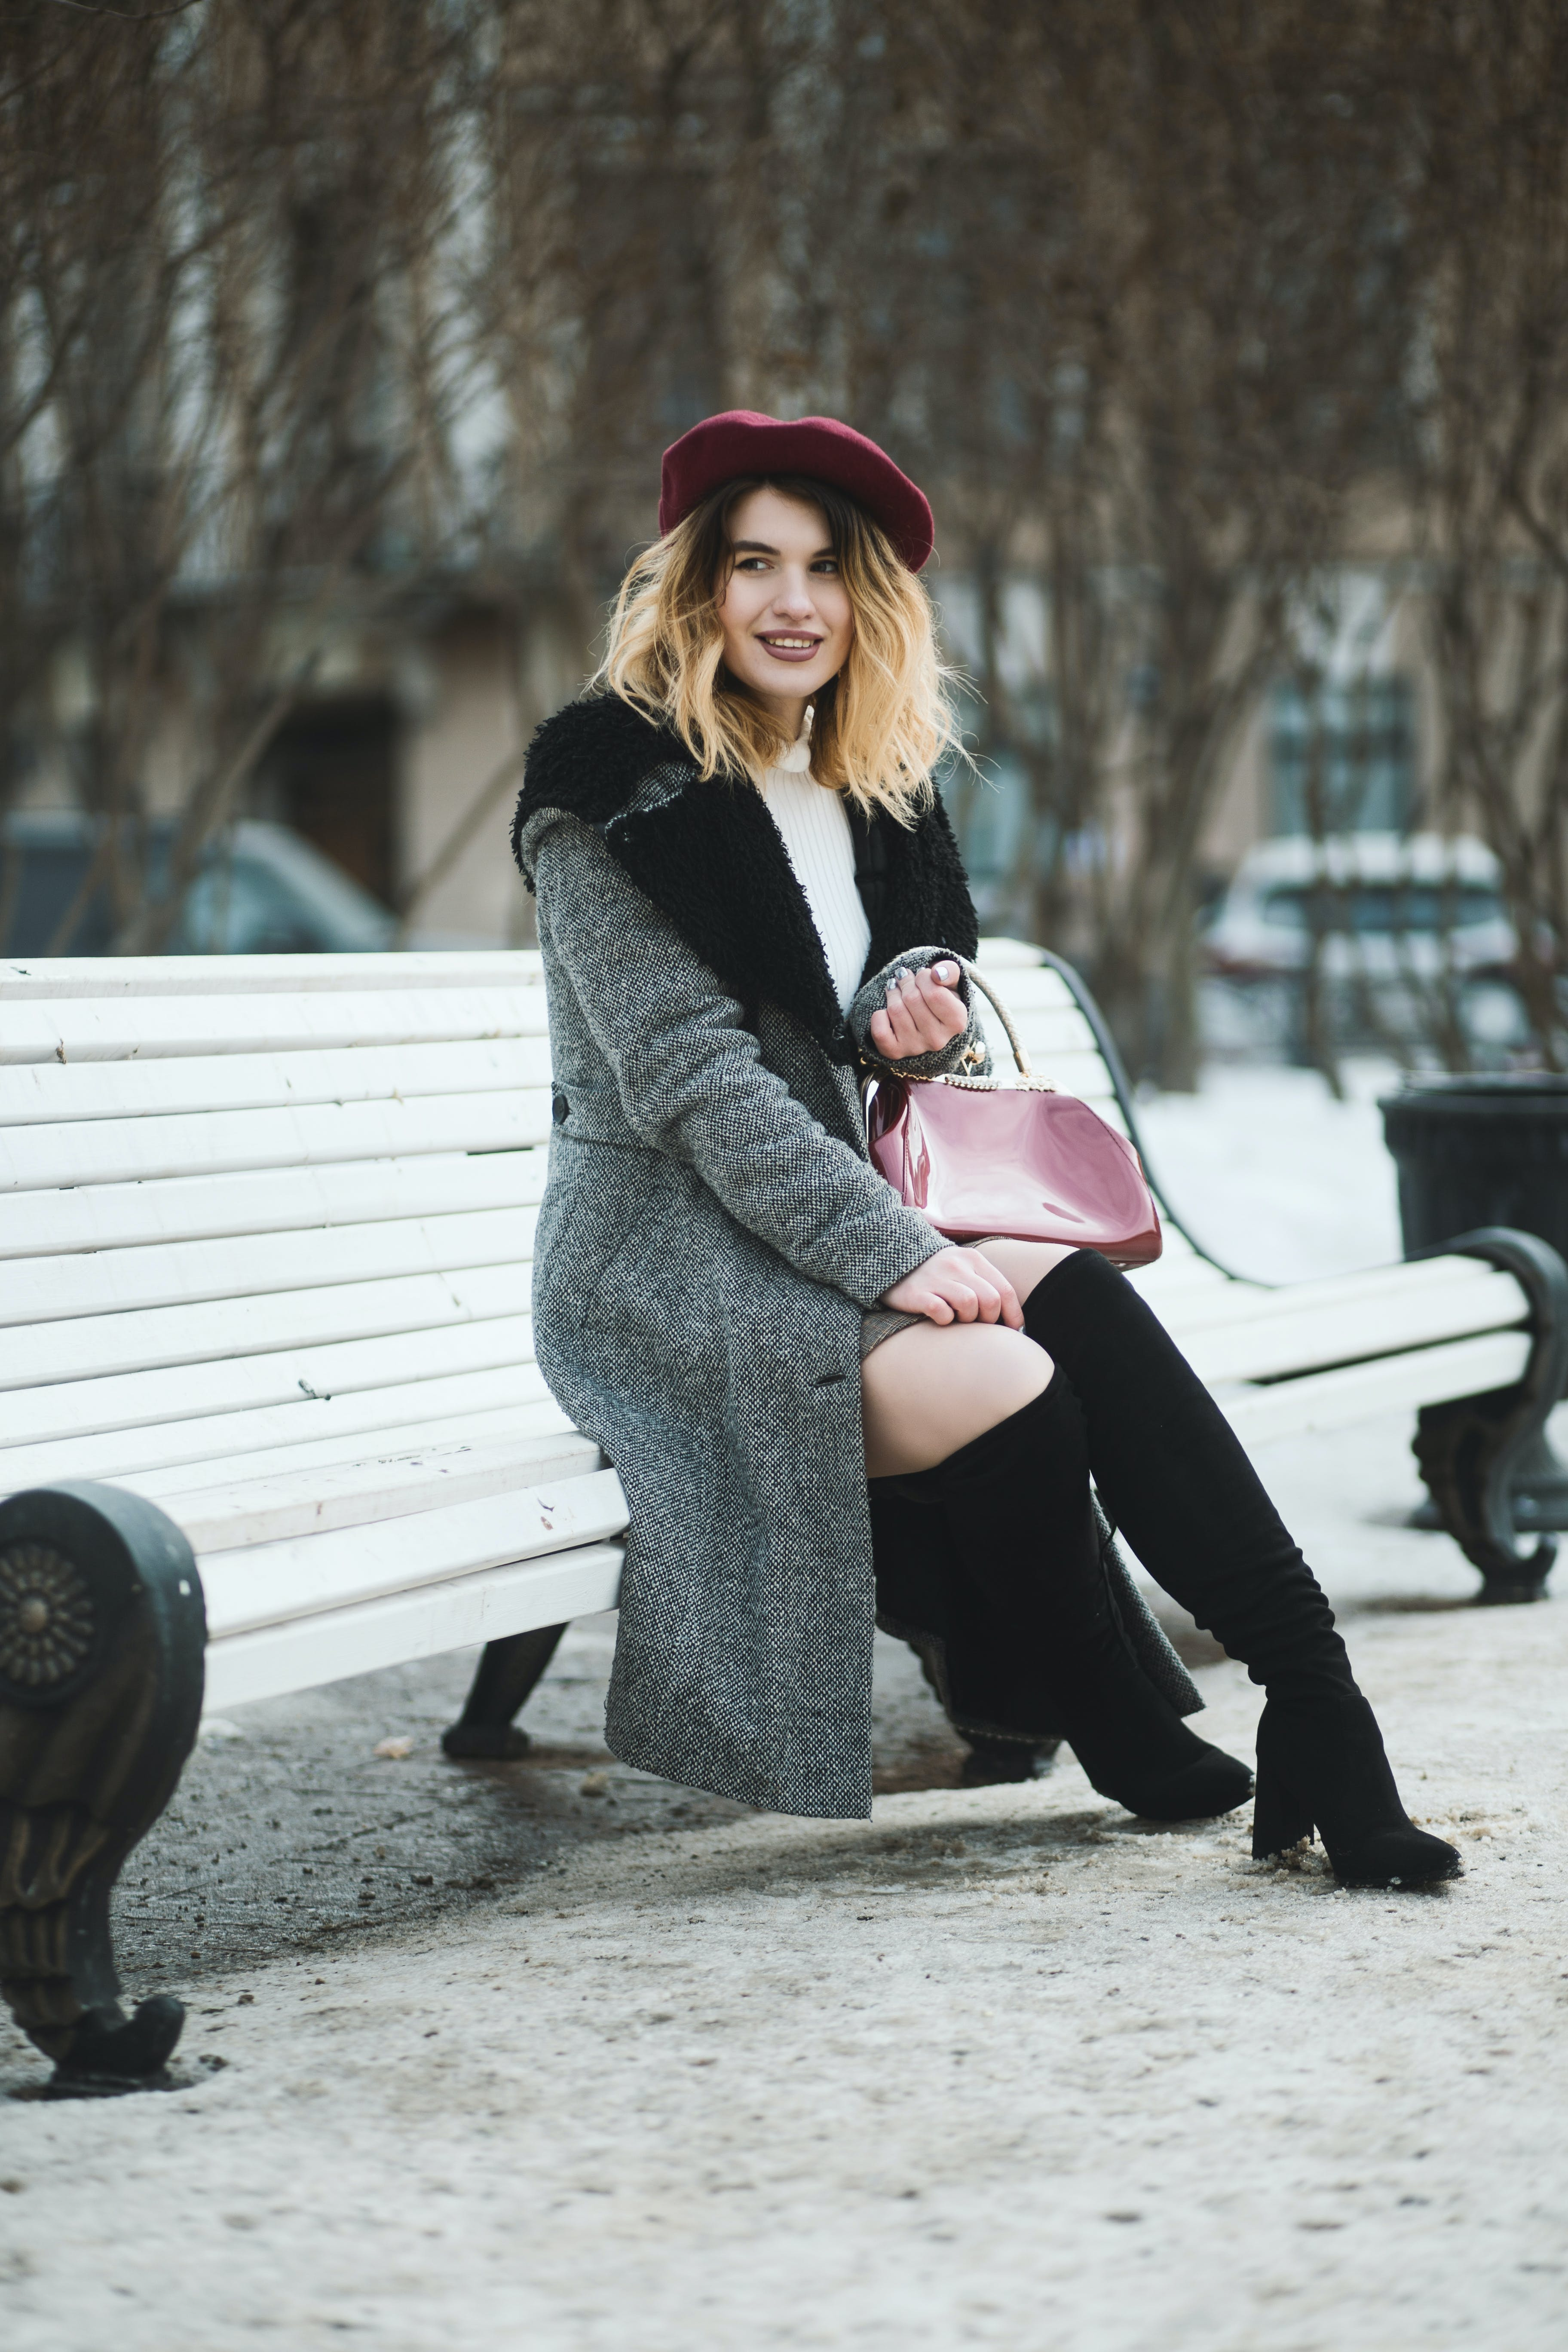 Smiling Woman Sitting On Bench